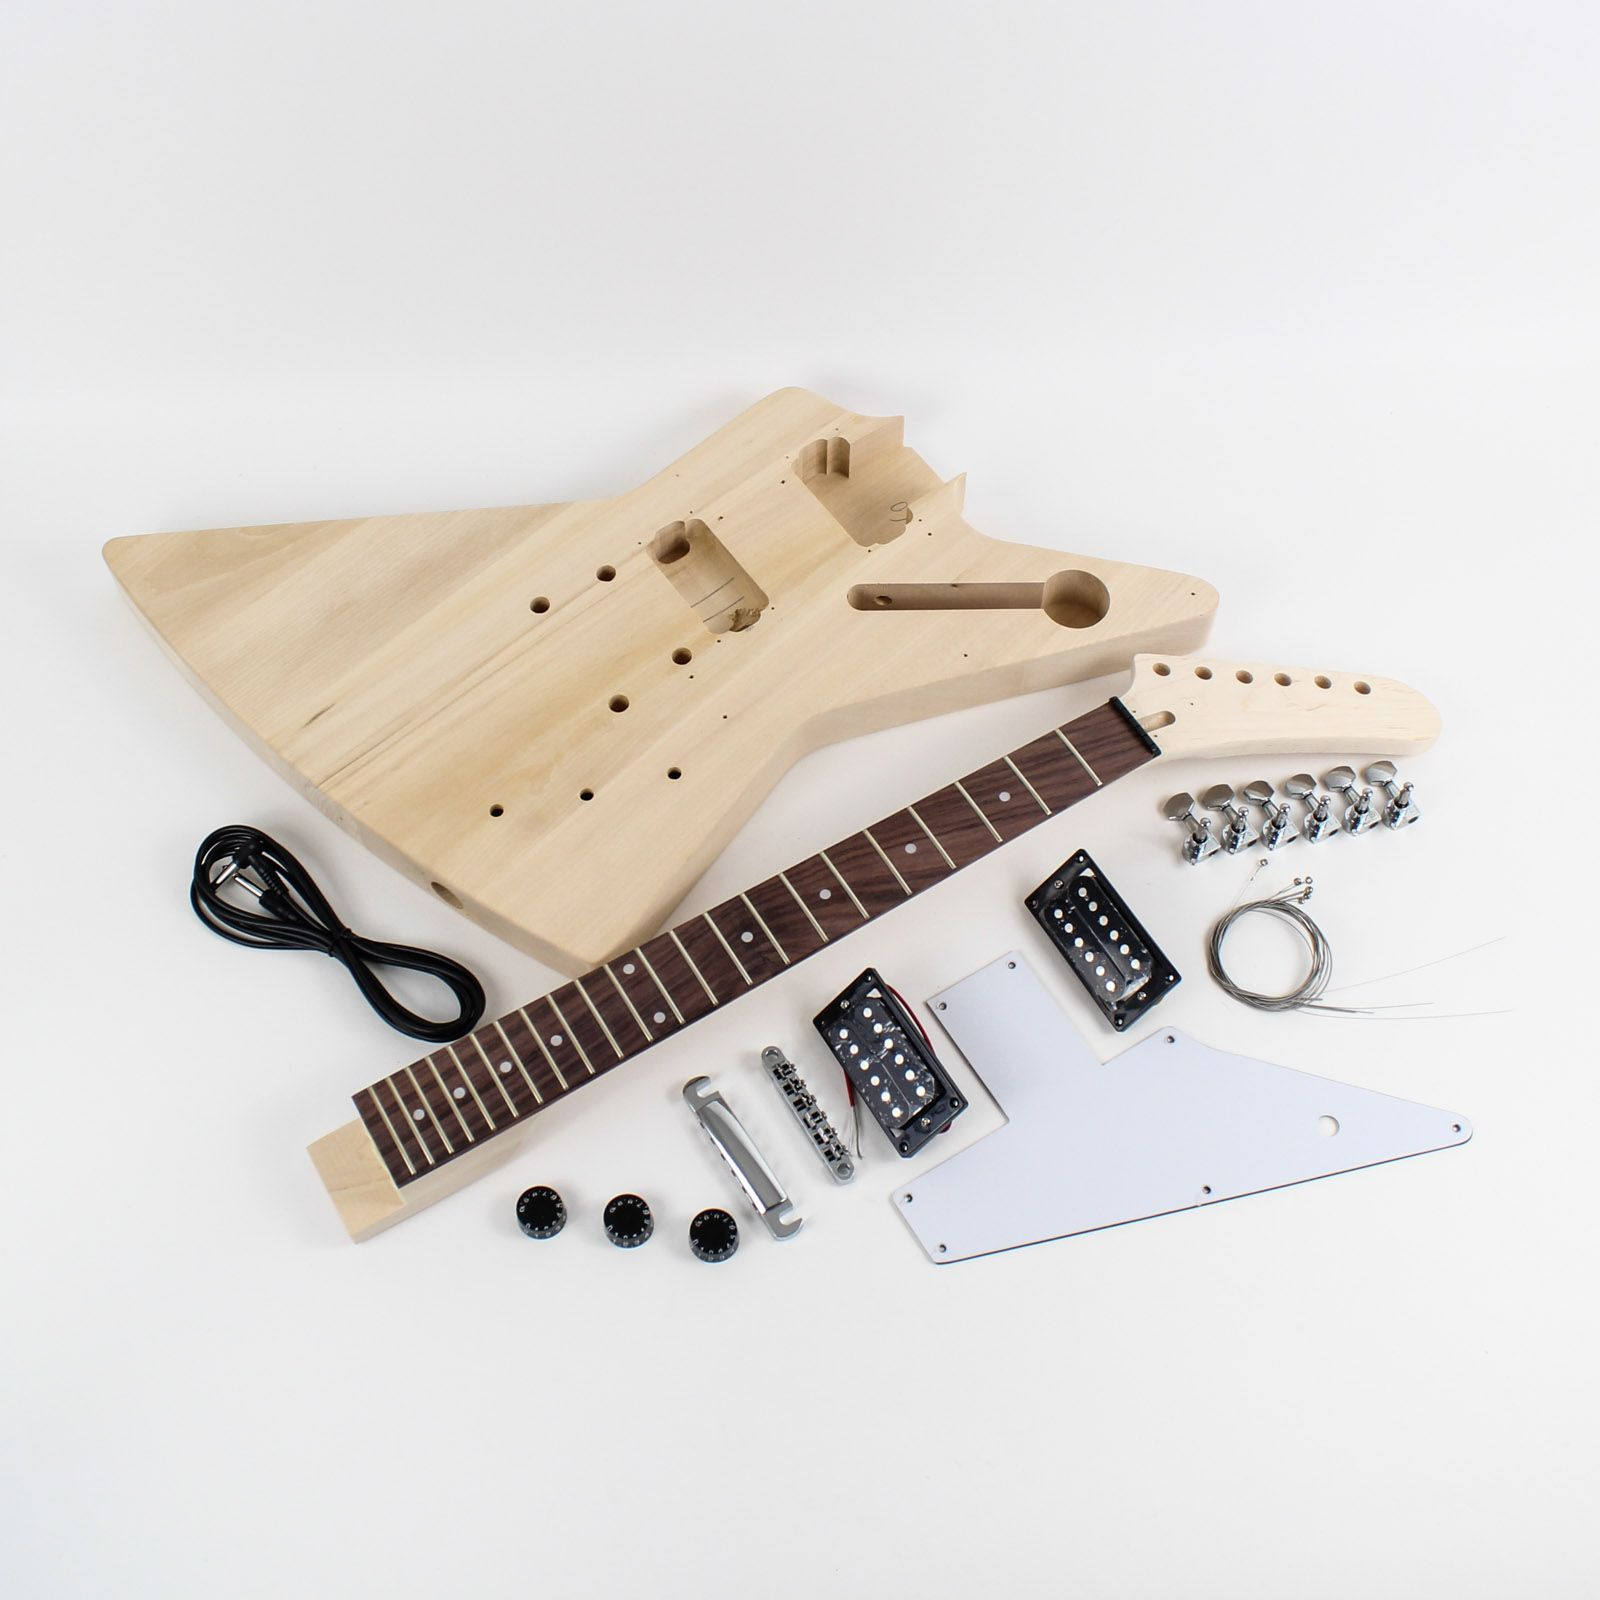 Build your own electric guitar with this diy kit styled on the build your own electric guitar with this diy kit styled on the gibson explorer free solutioingenieria Gallery